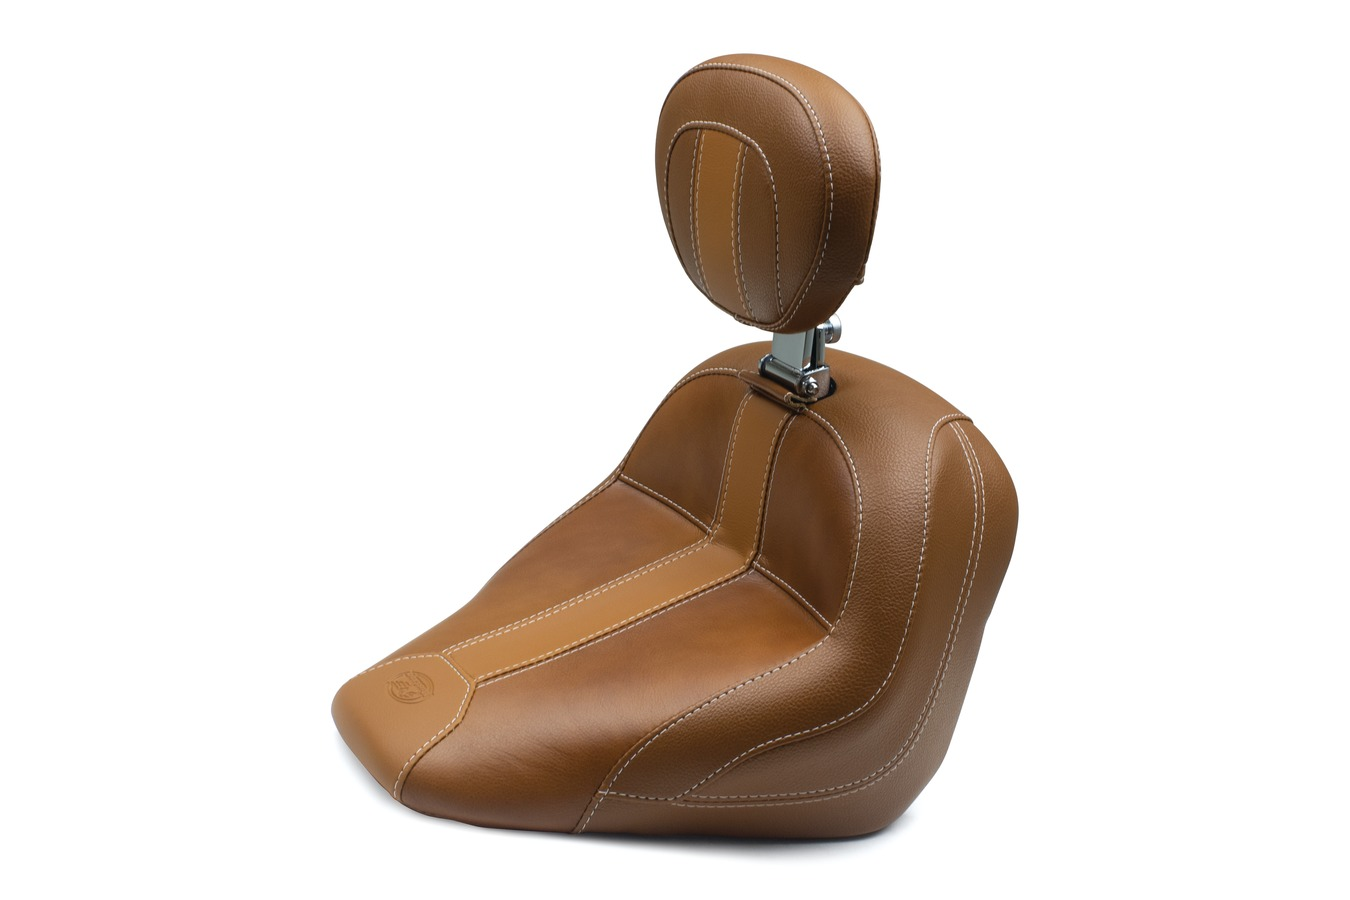 Standard Touring Solo Seat with Driver Backrest for Indian Scout 2015-